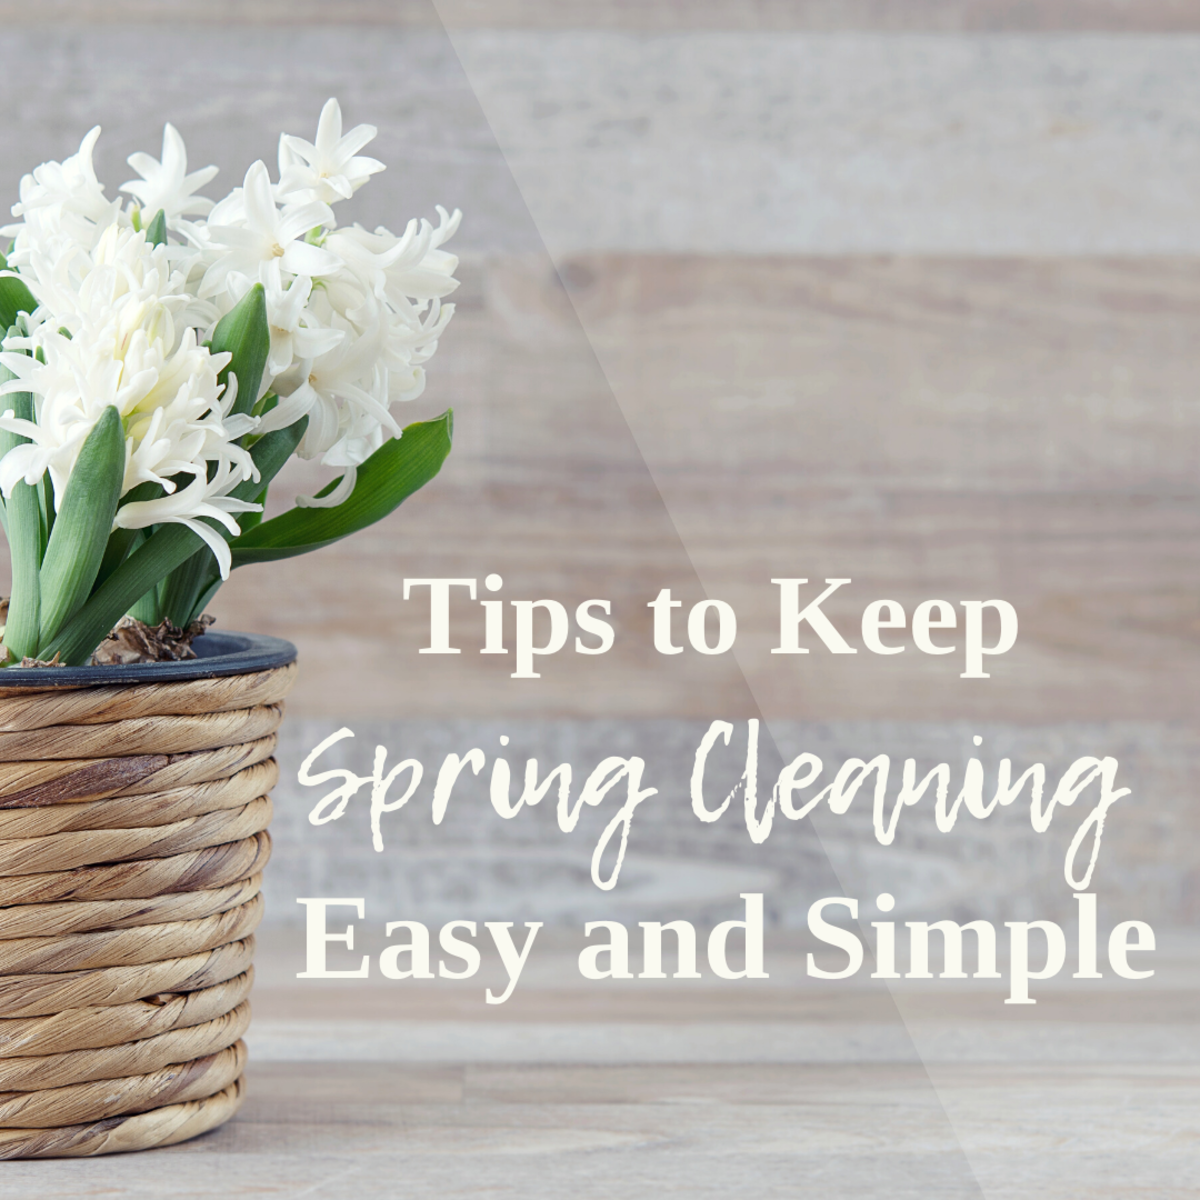 Spring Cleaning 101: Tips, Tricks, and Room-by-Room Guide